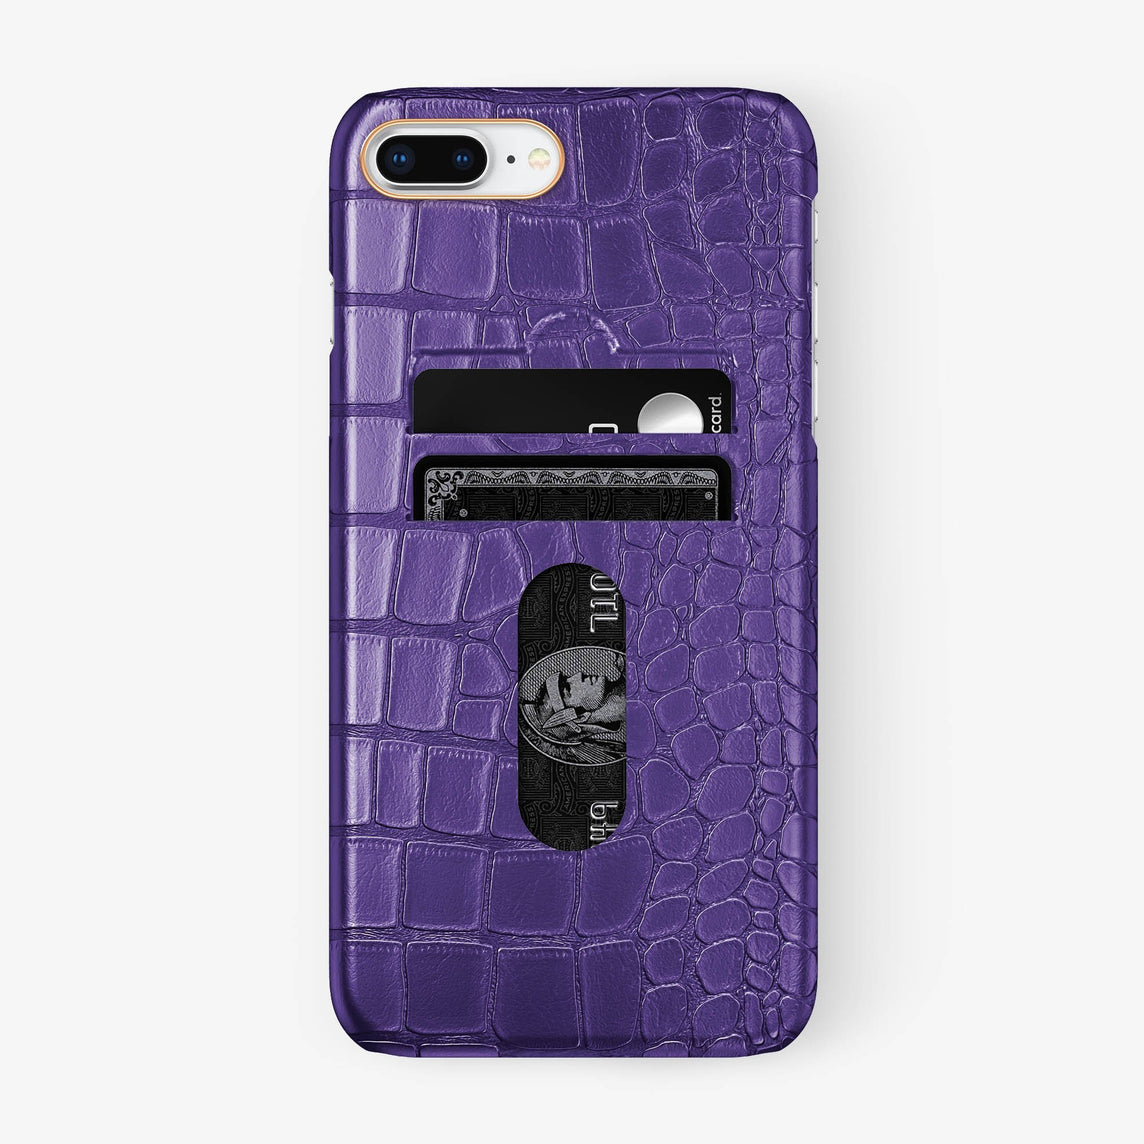 Alligator Card Holder Case iPhone 7/8 Plus | Purple - Rose Gold